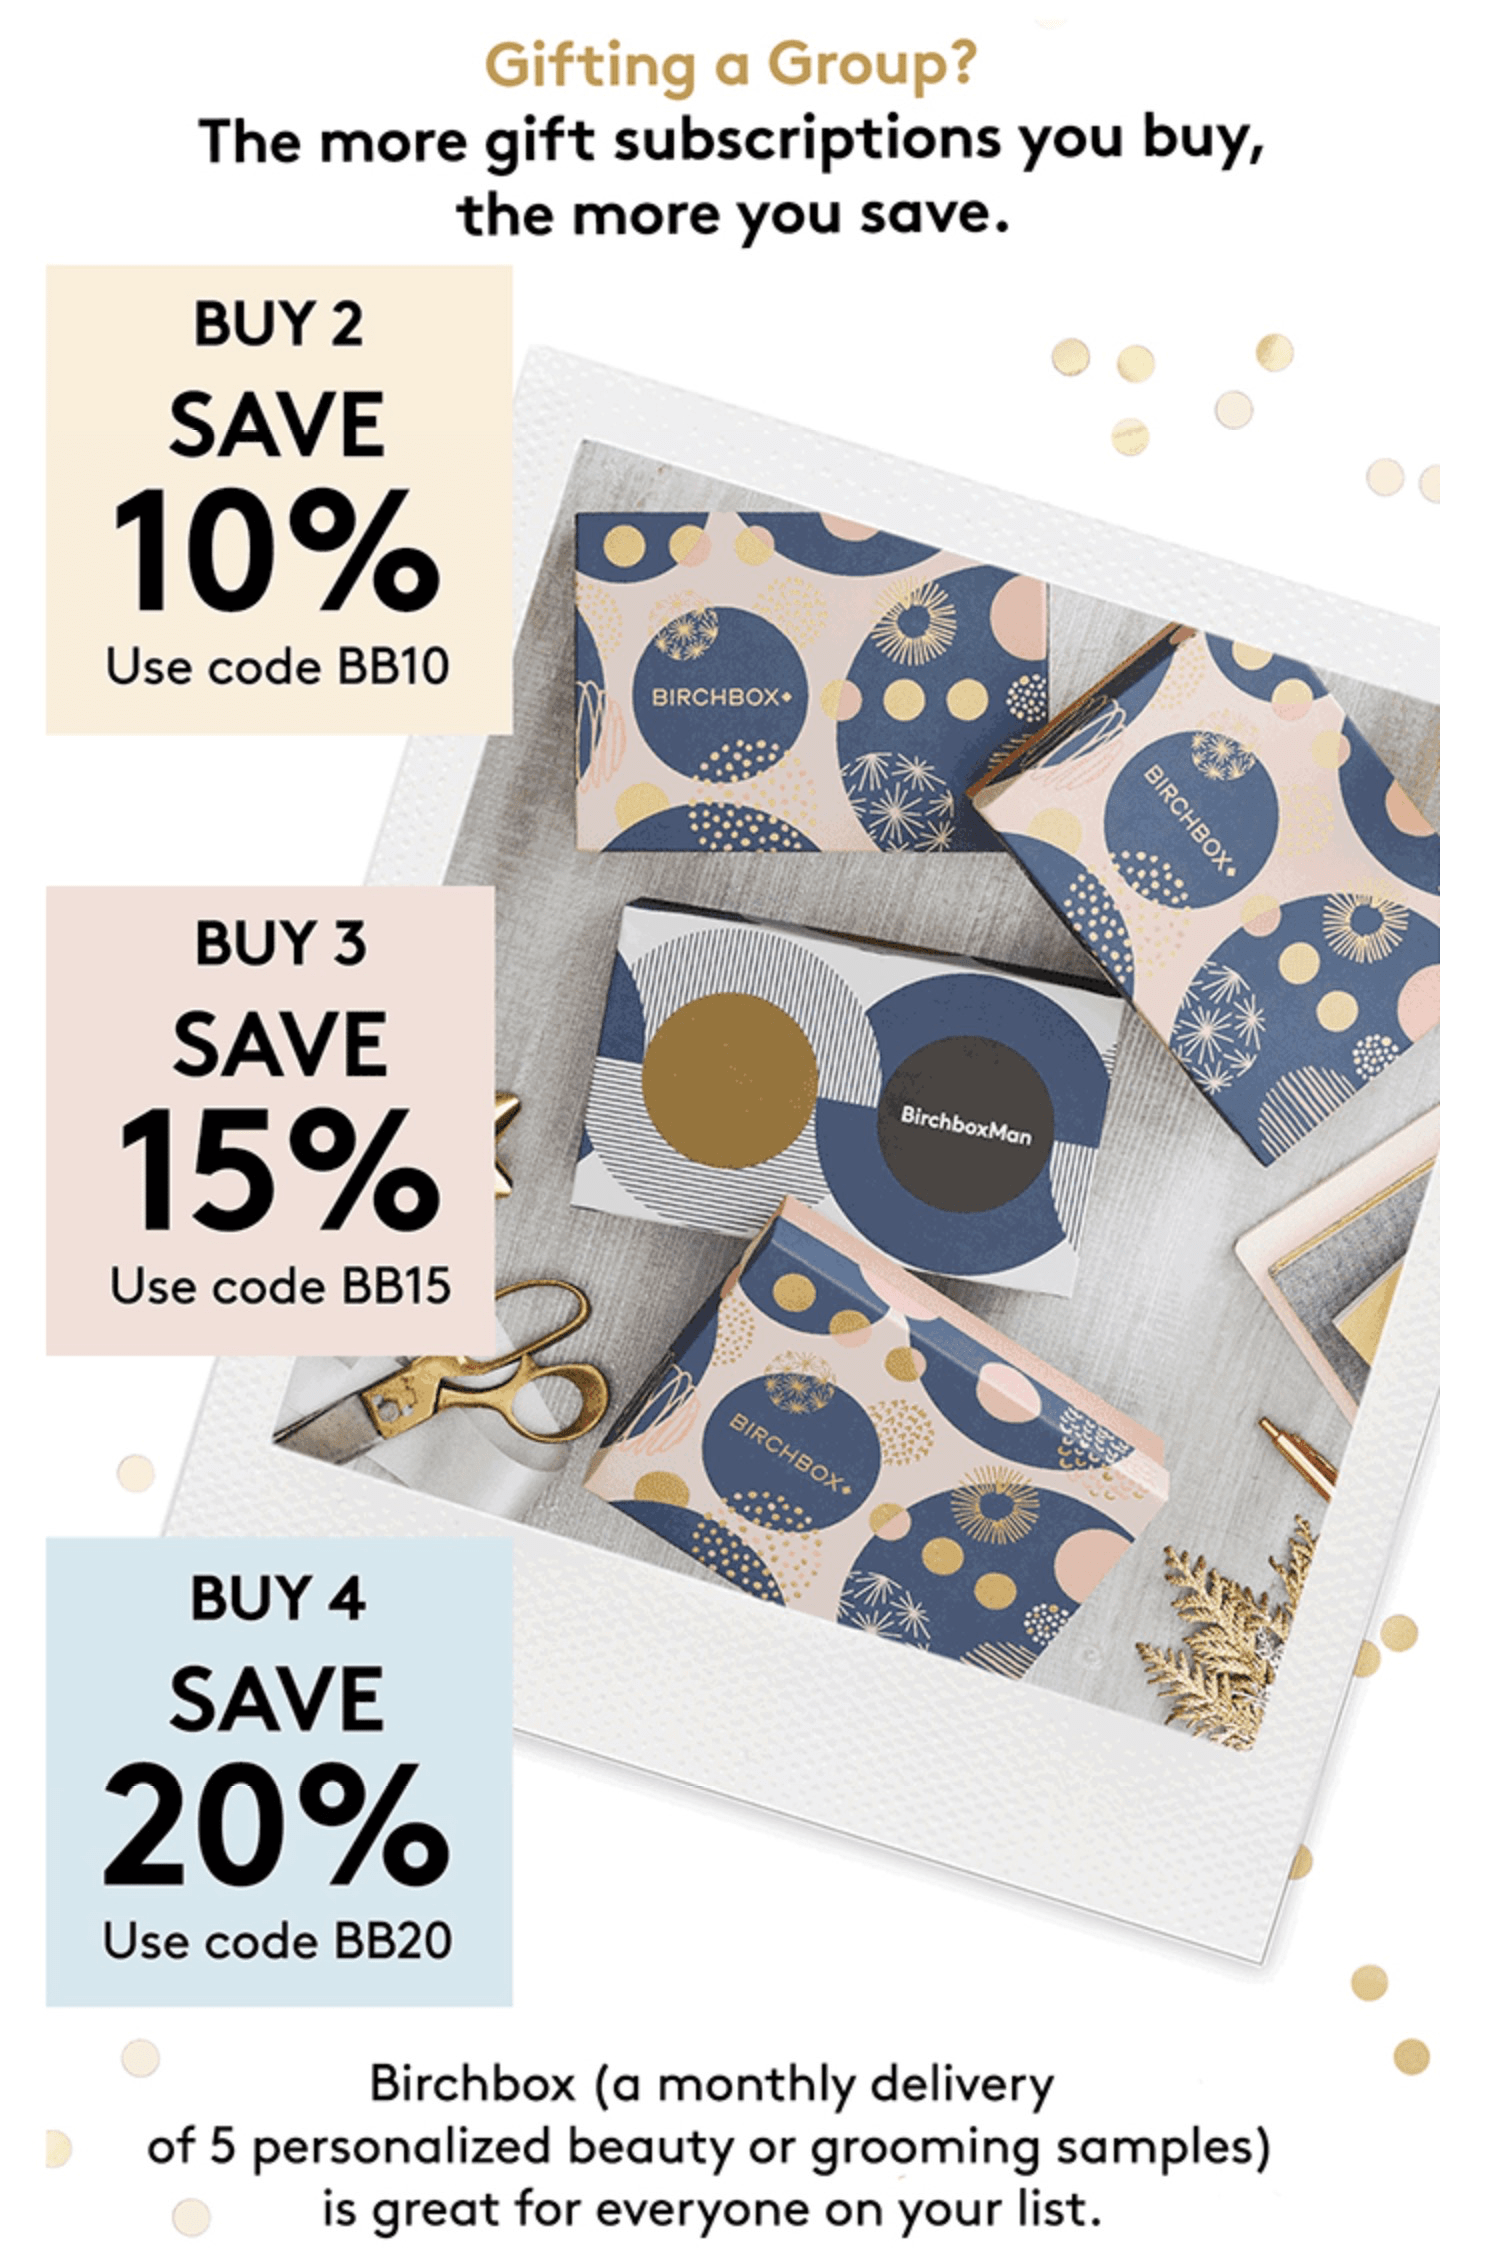 Save Up To 20% on Birchbox Gift Subscriptions!